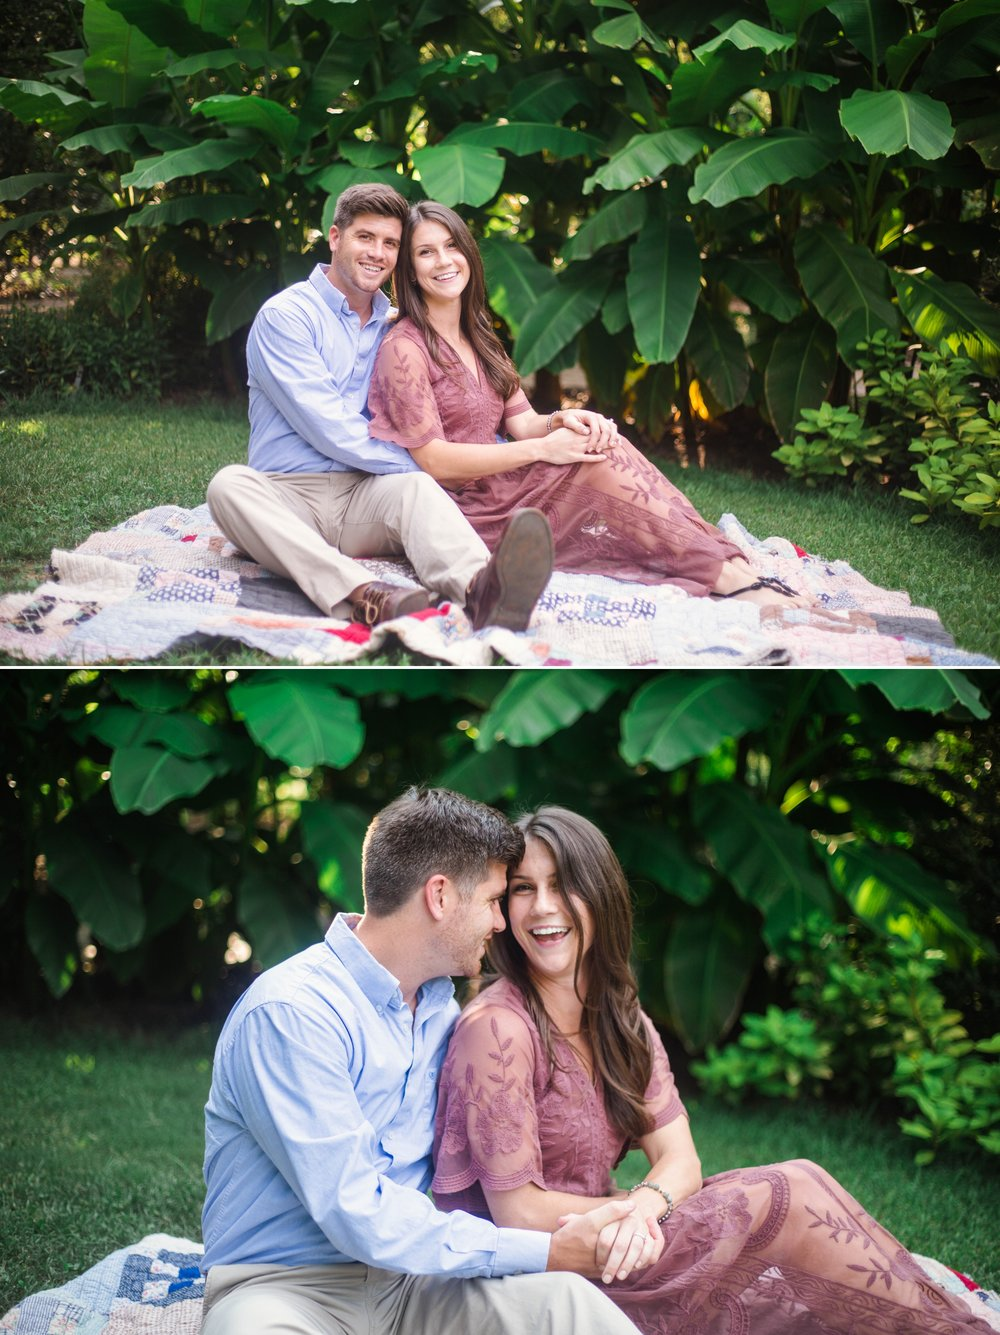 Tropical Engagement Aryn + Tyler -  Photography Session at the JC Raulston Arboretum - Raleigh Wedding Photographer